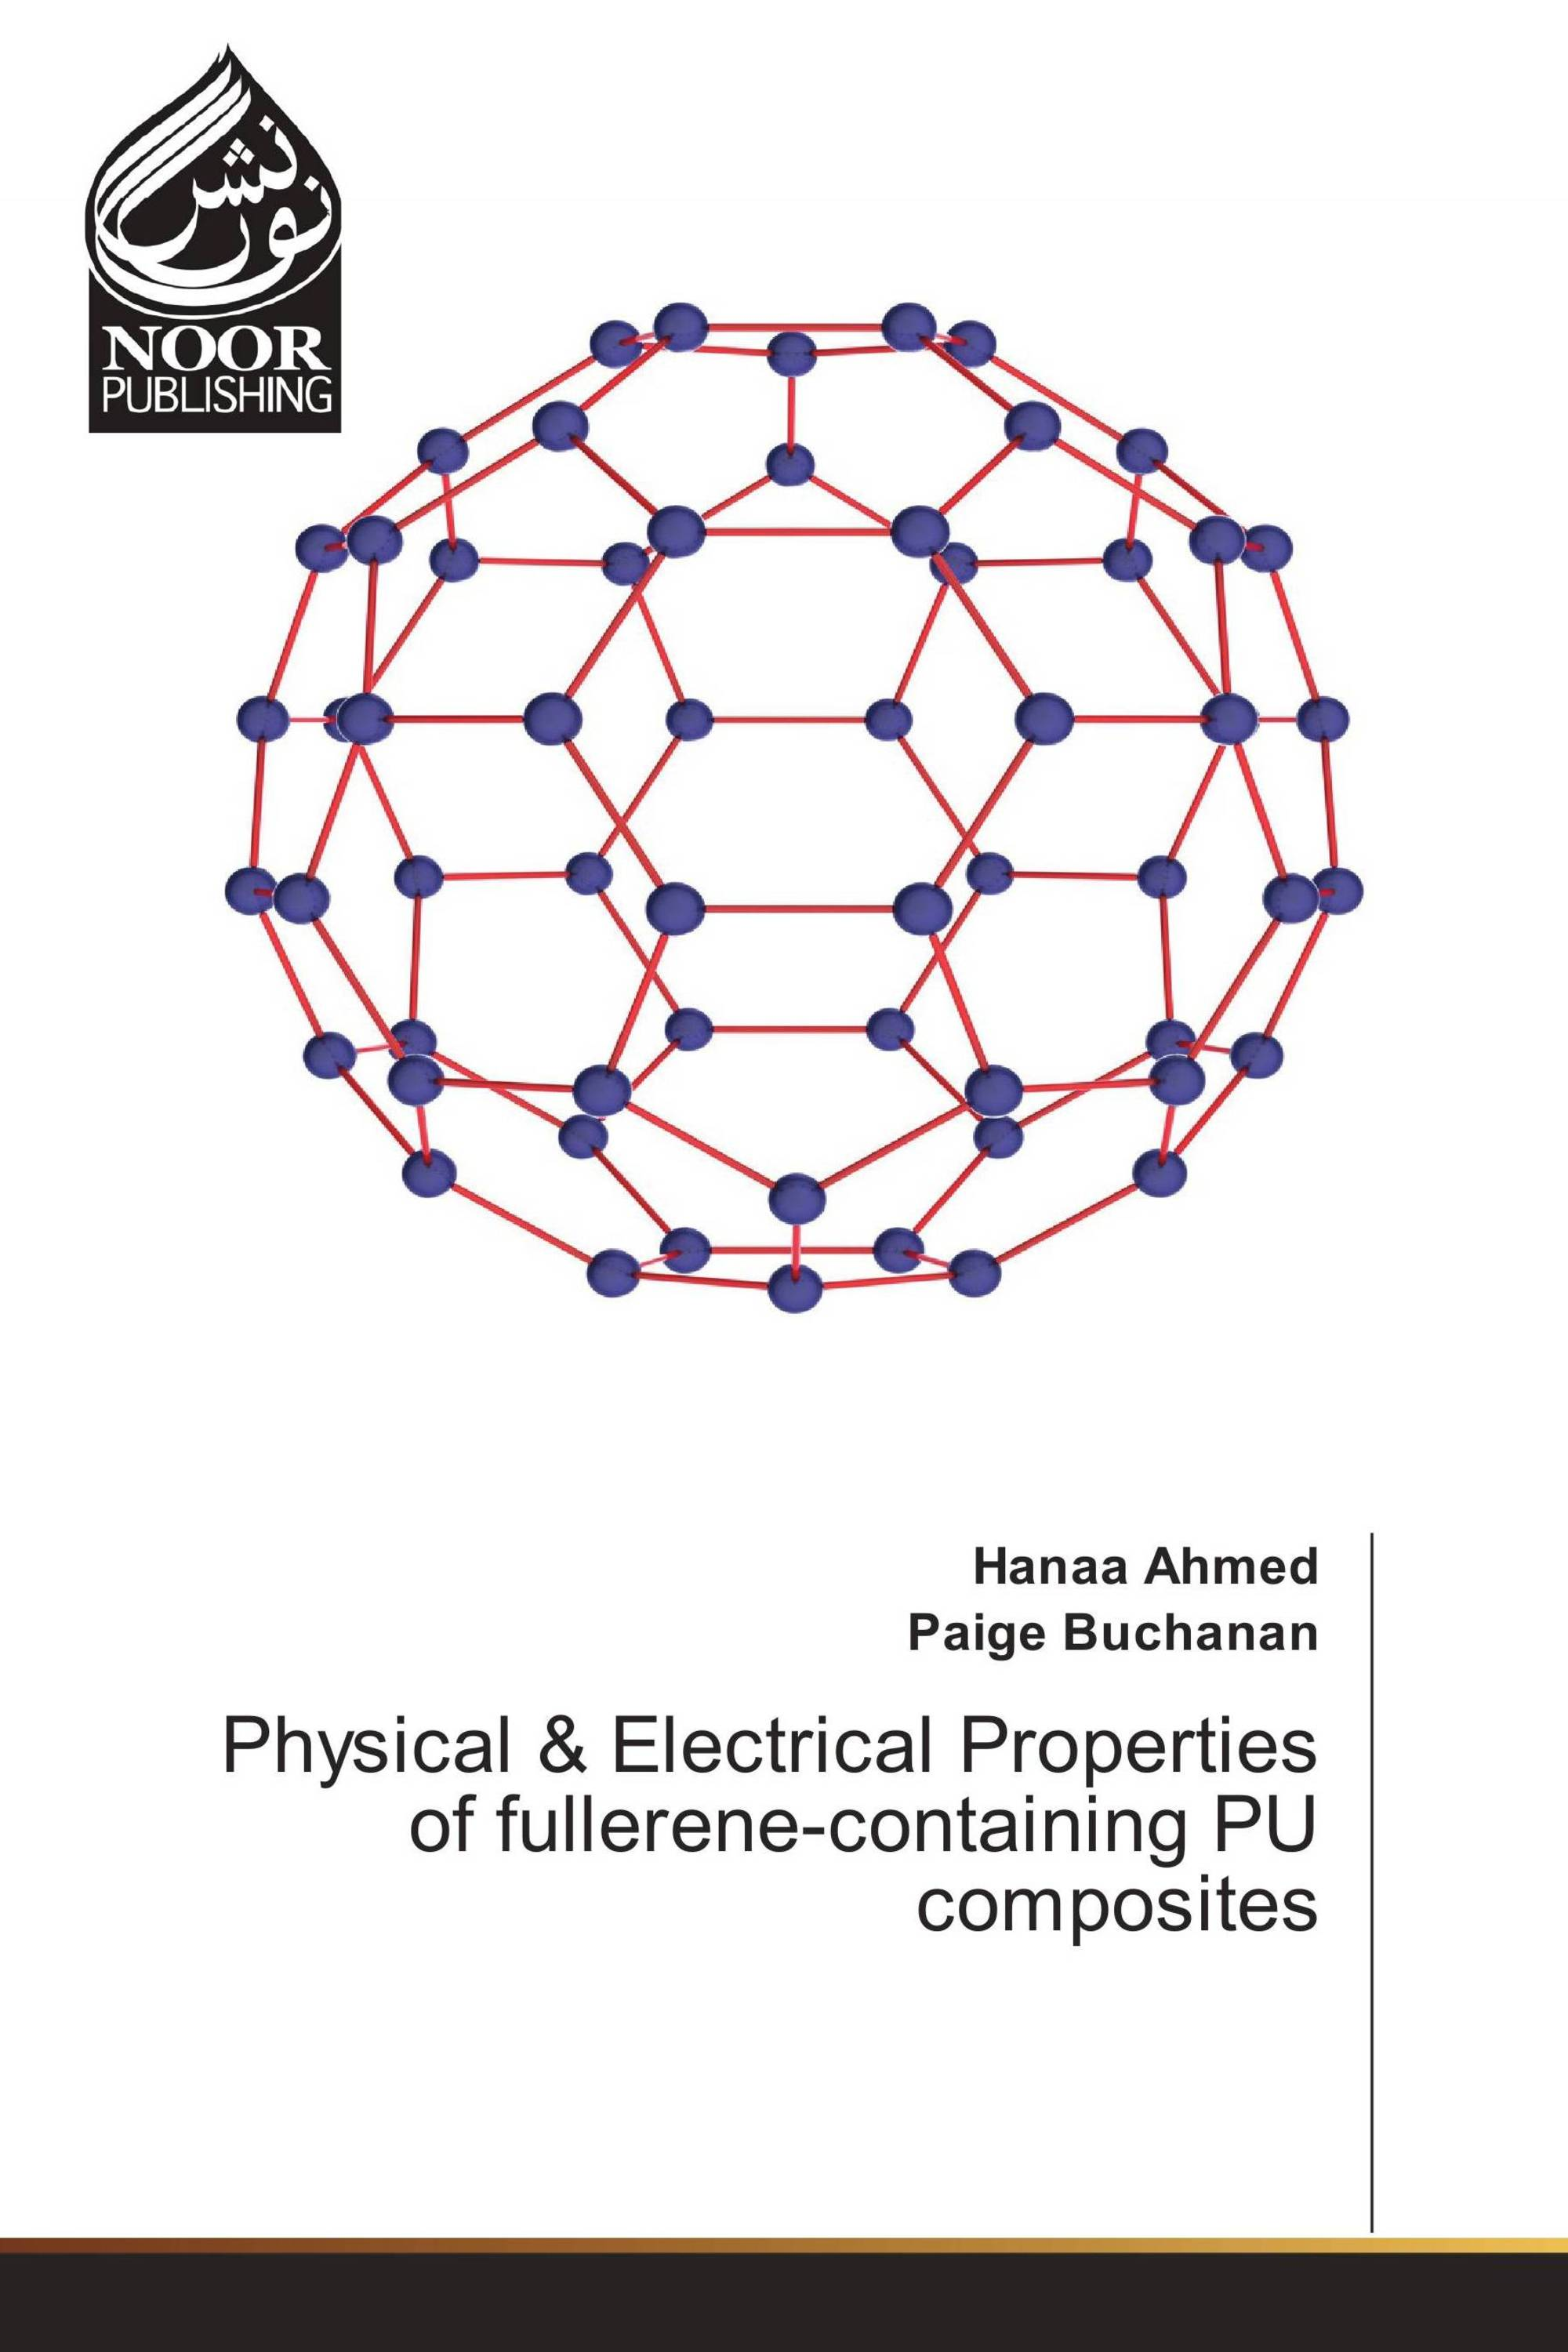 Physical & Electrical Properties of fullerene-containing PU composites